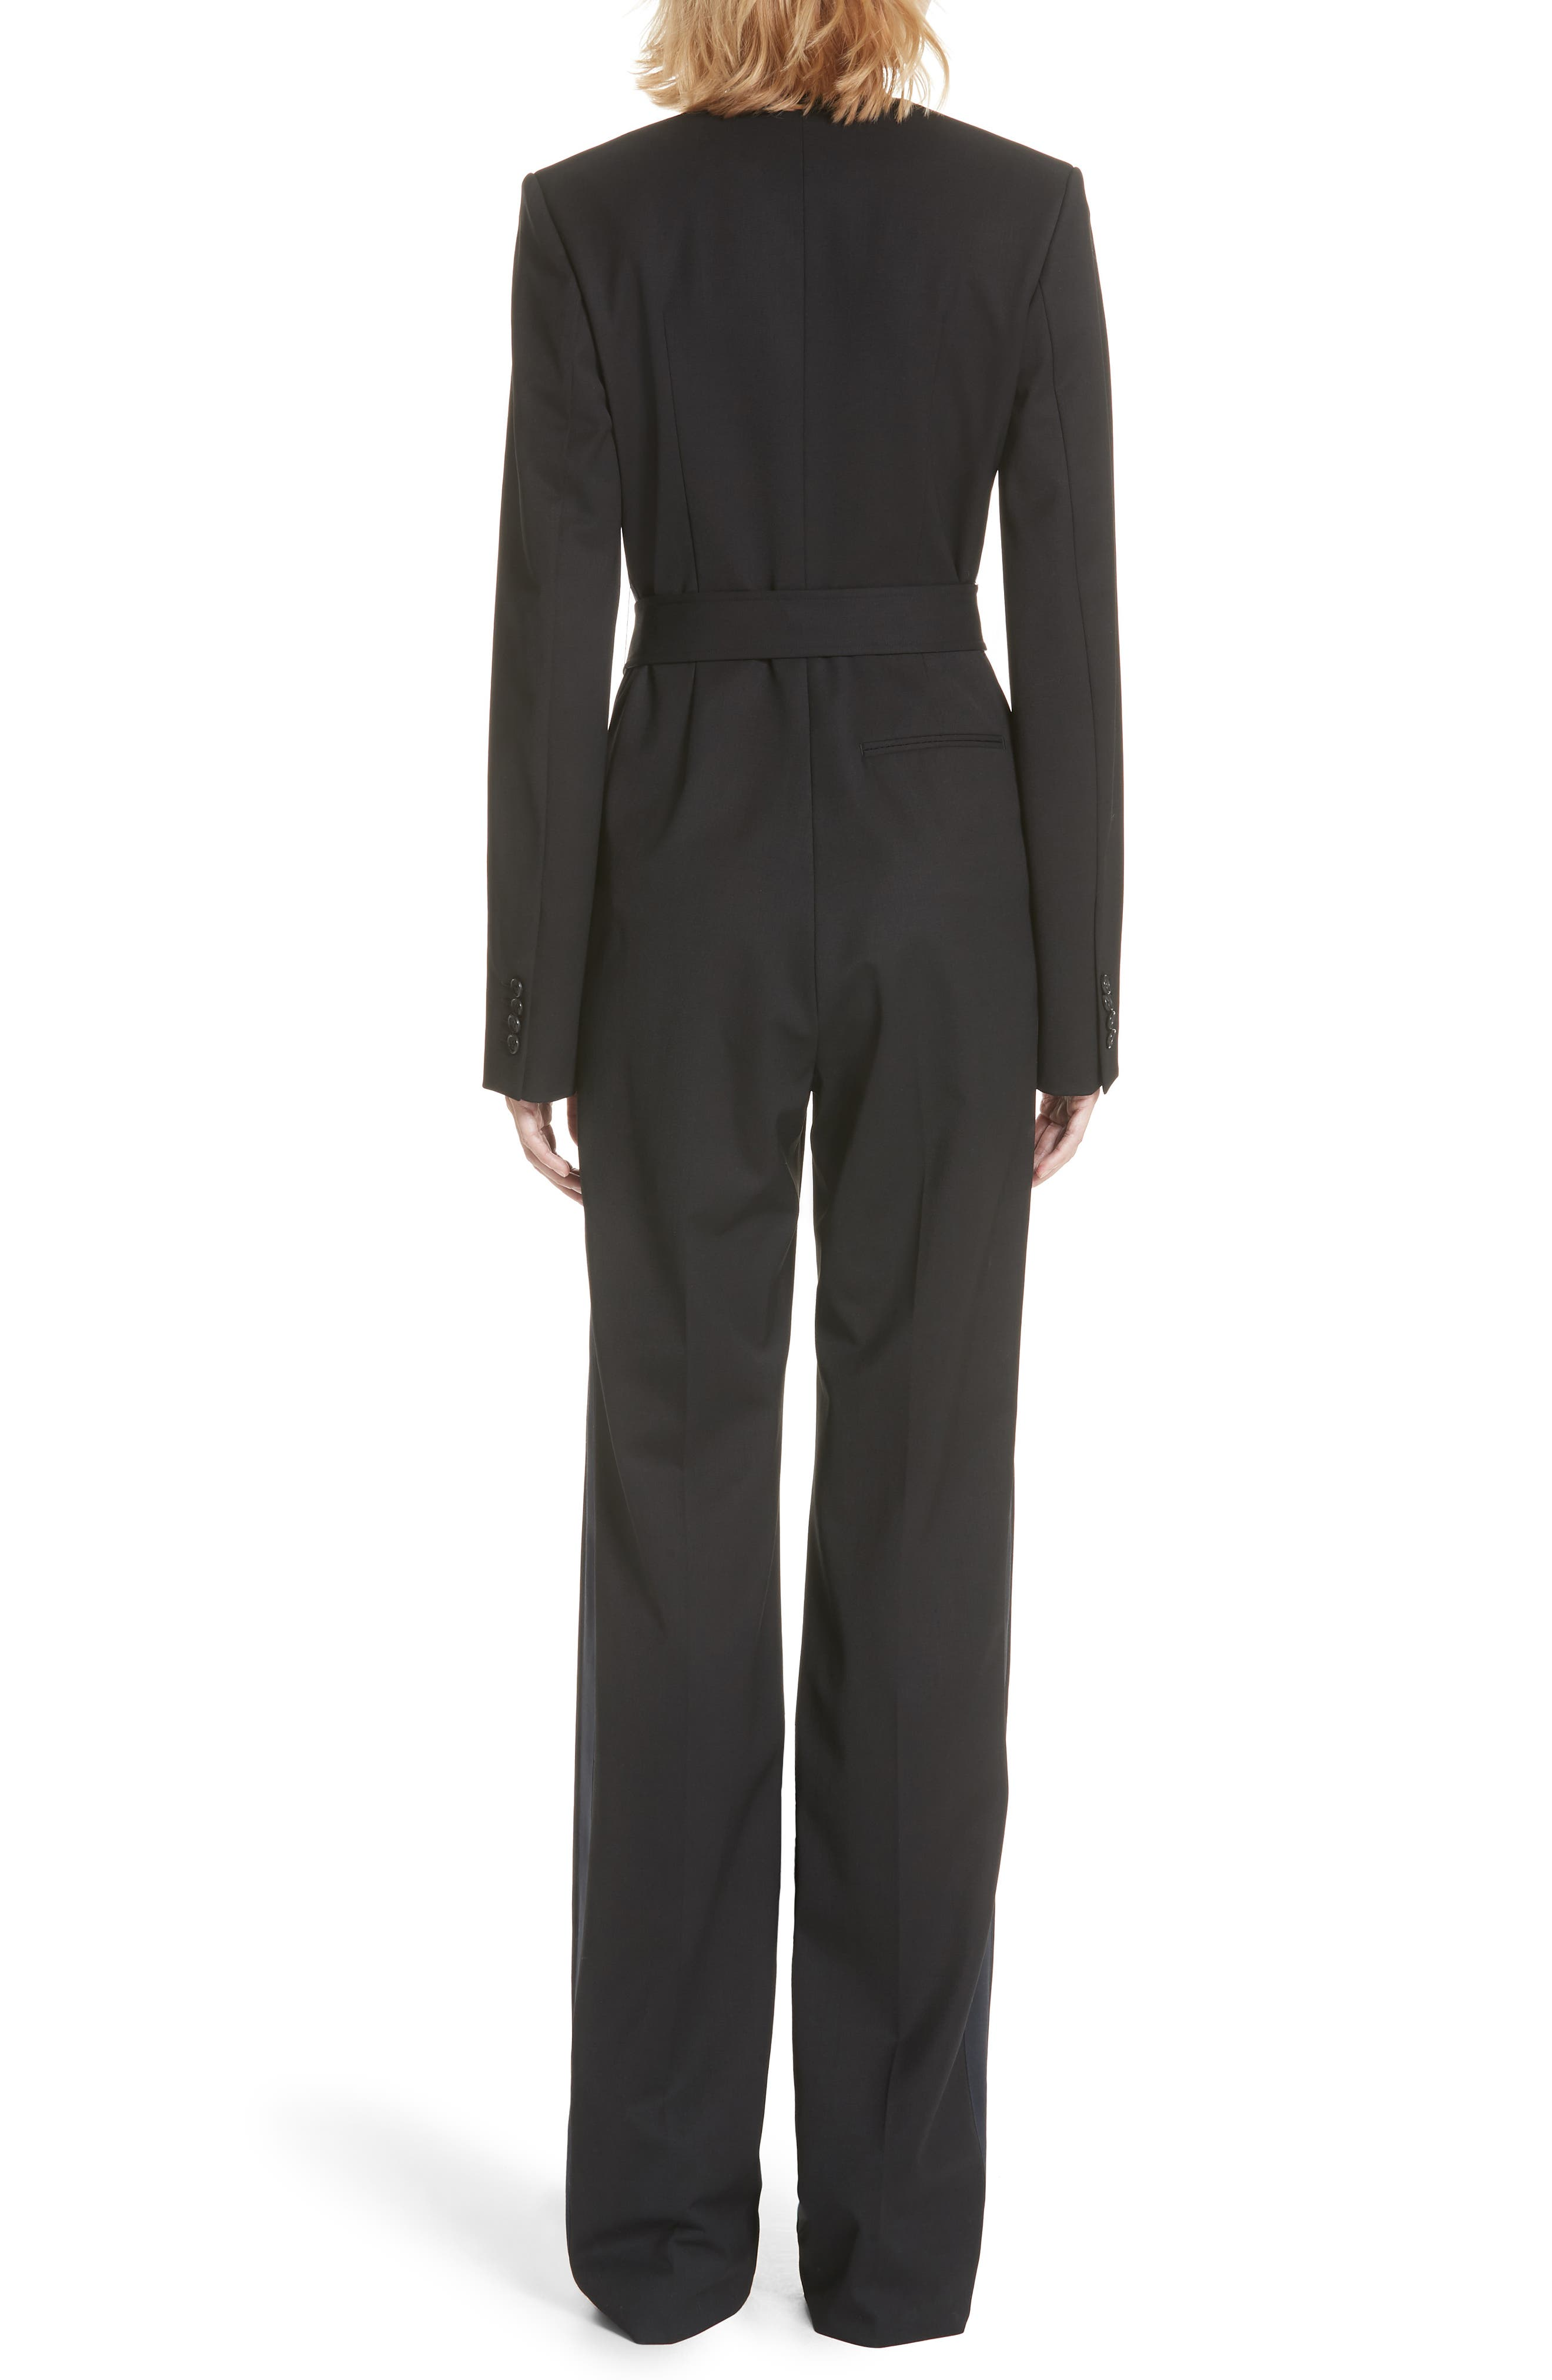 CALVIN KLEIN 205W39NYC, Side Stripe Wool Blend Jumpsuit, Alternate thumbnail 2, color, BLACK DARK NAVY